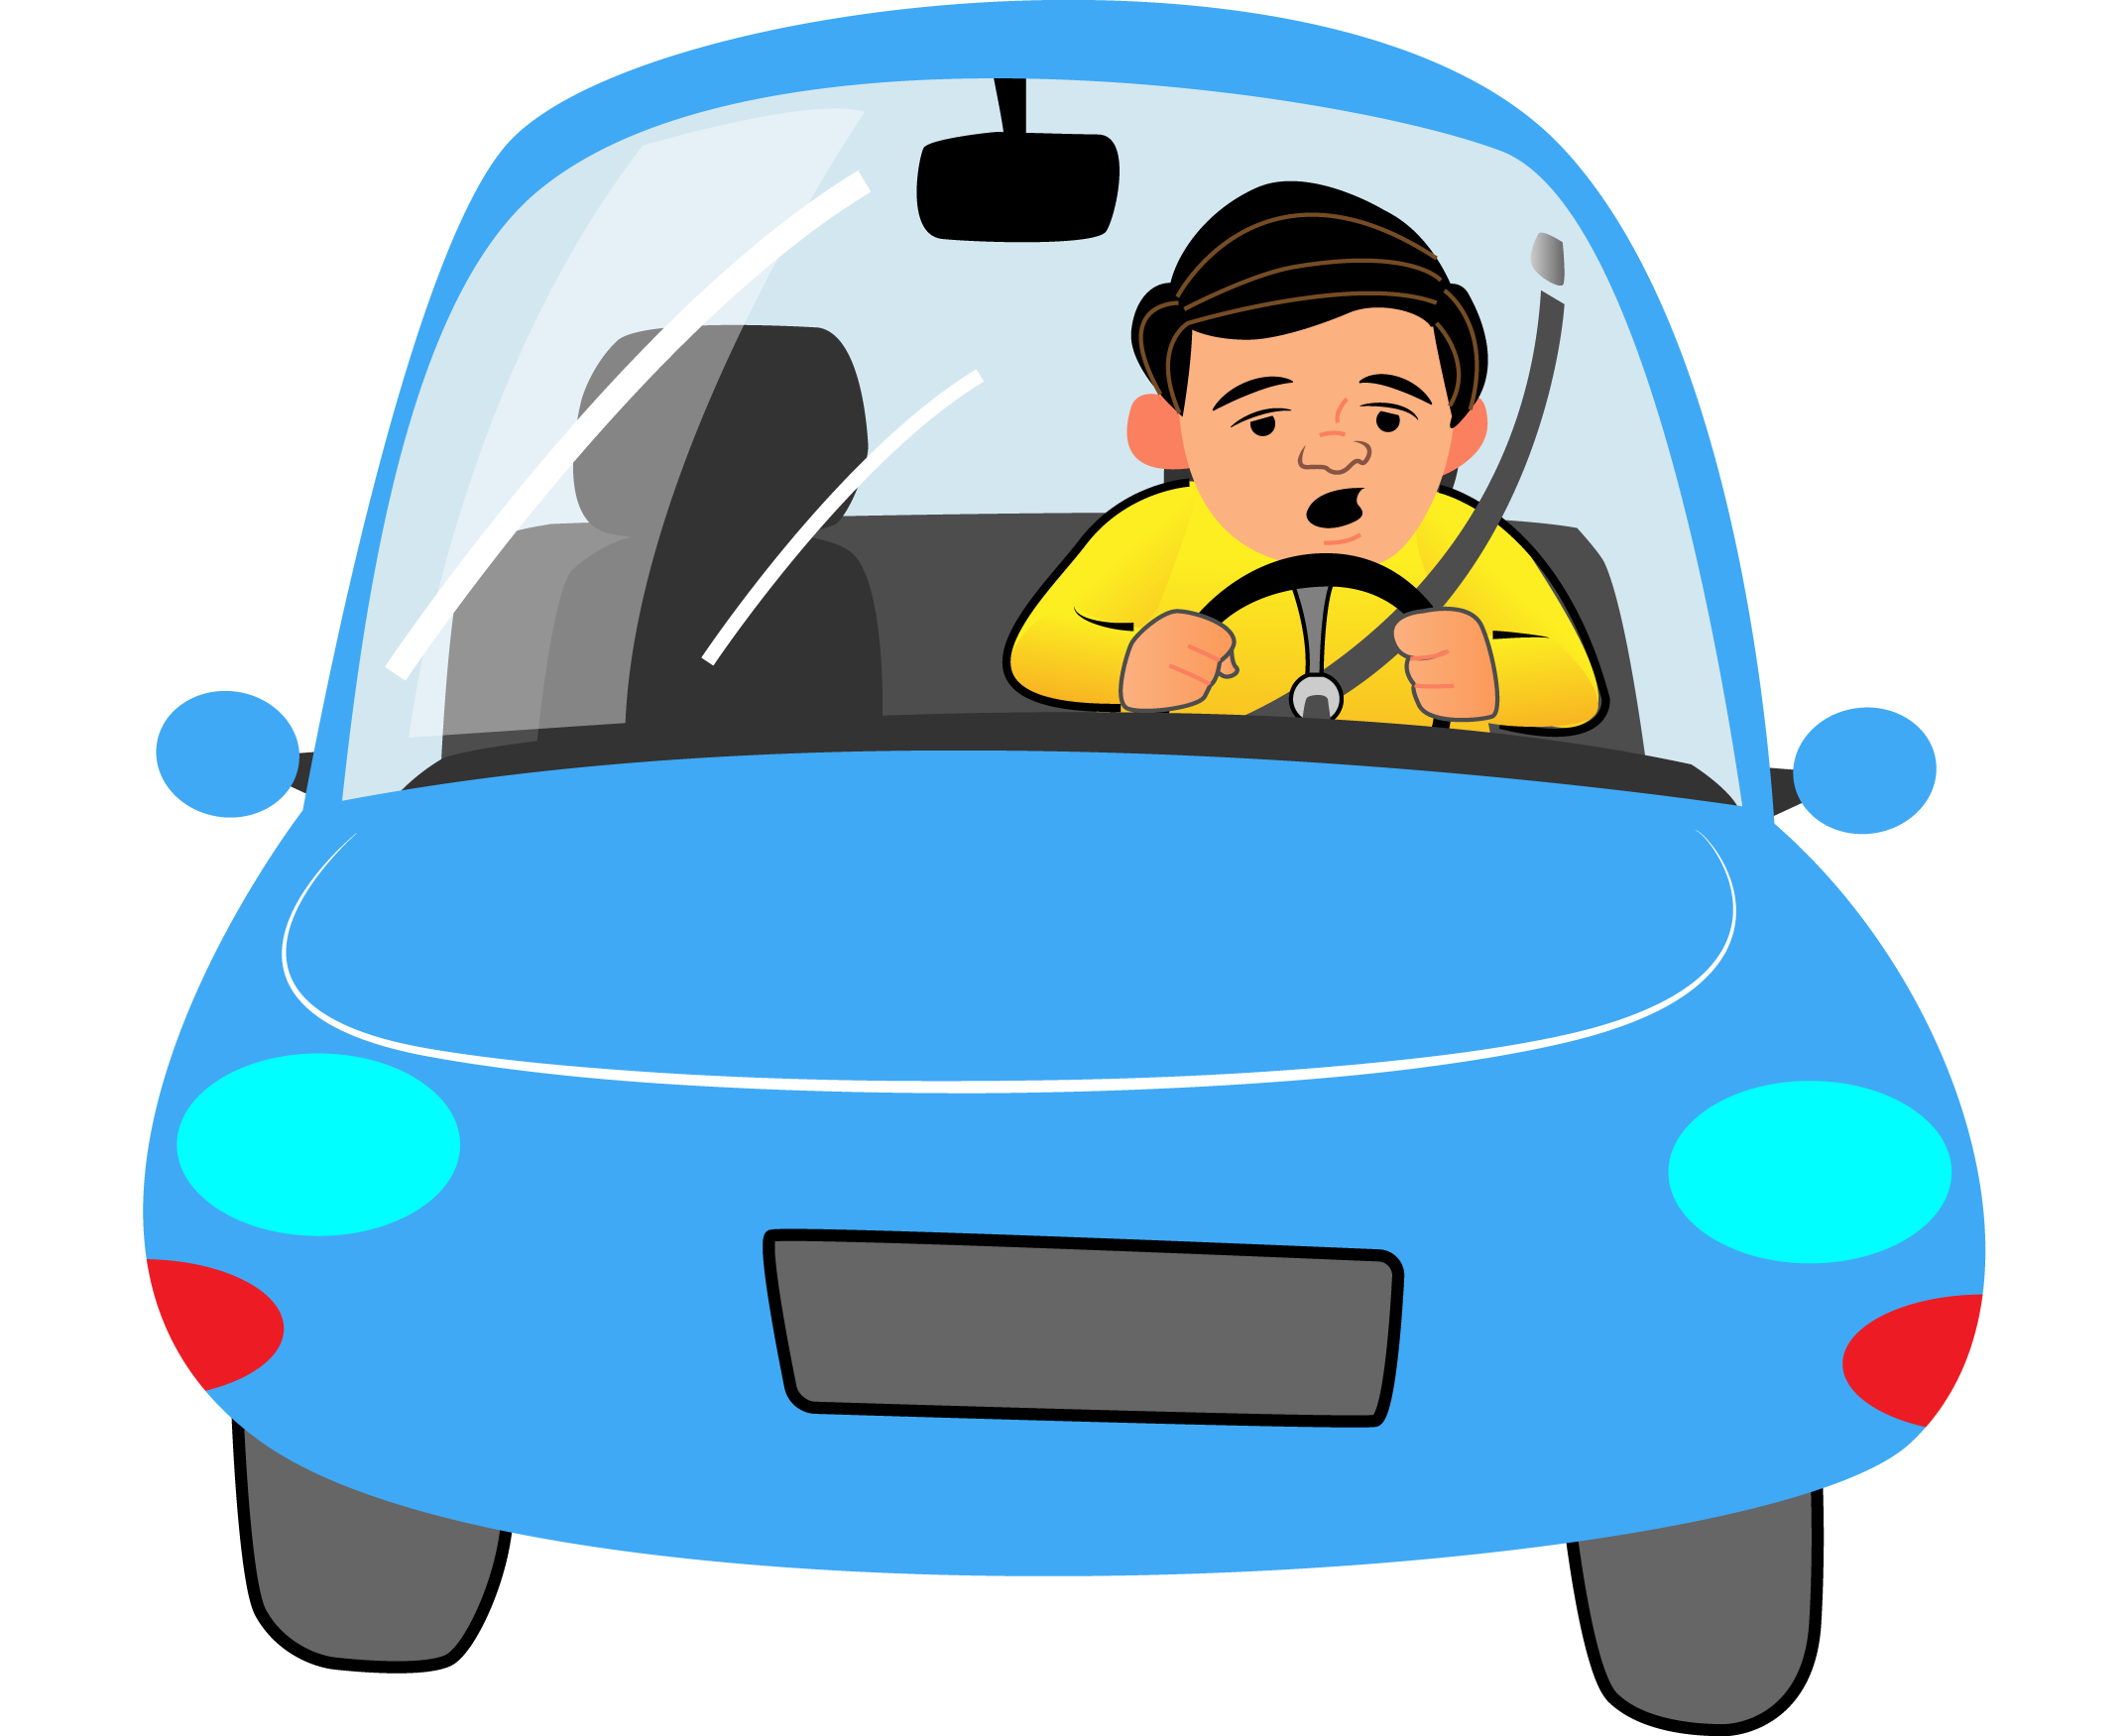 How to do more. Driving clipart sleepy driver picture library library